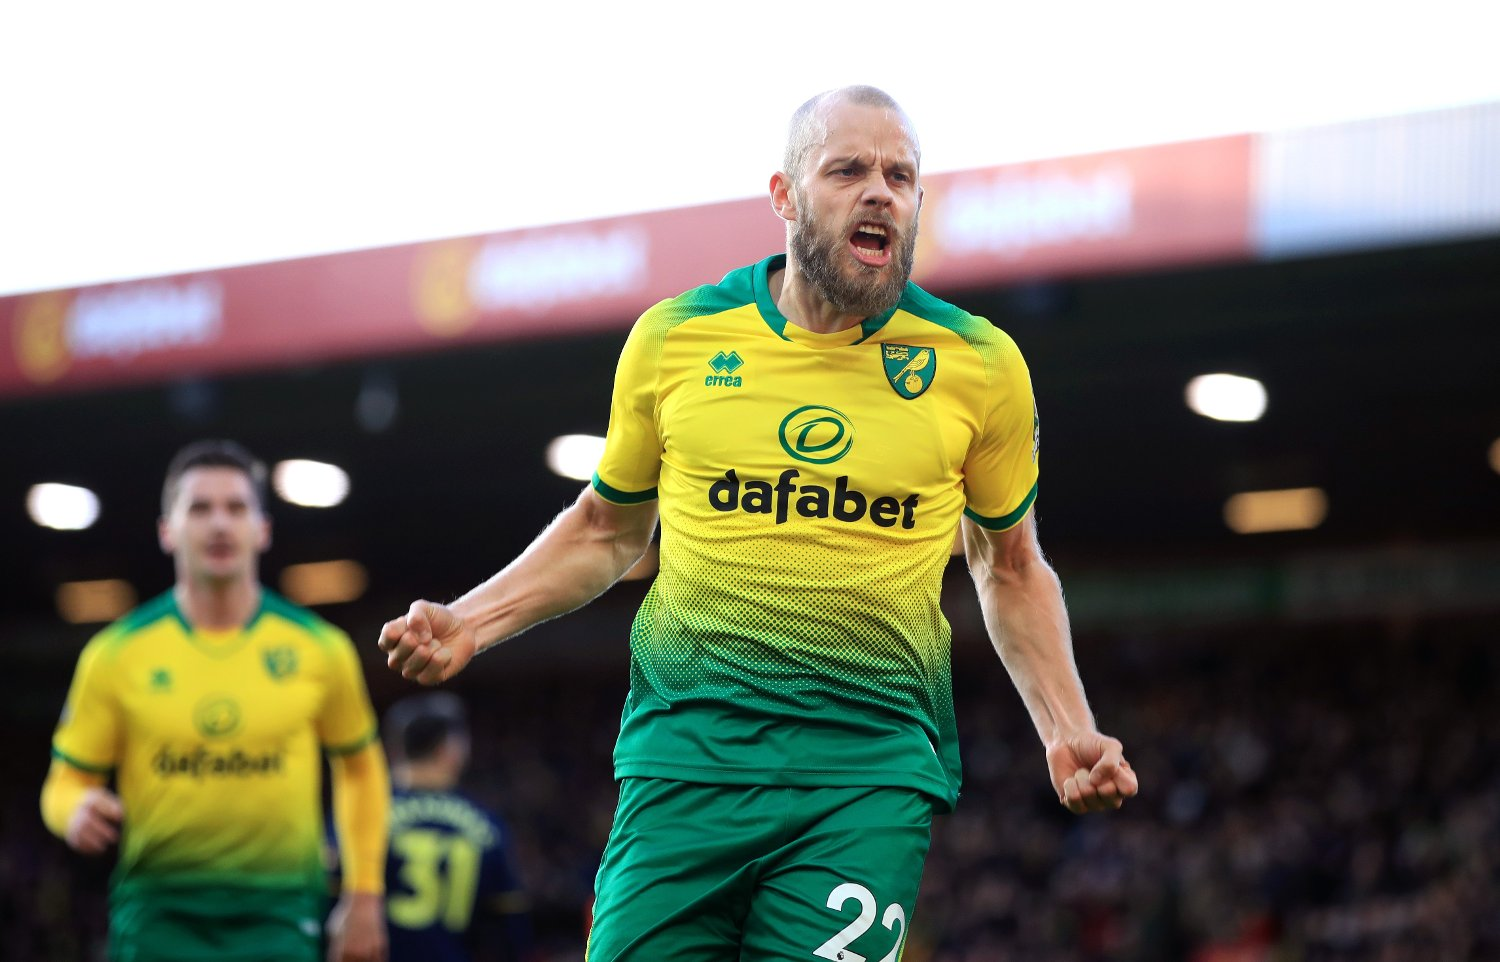 Norwich City's Teemu Pukki celebrates scoring his sides first goal during the Premier League match at Carrow Road, Norwich.